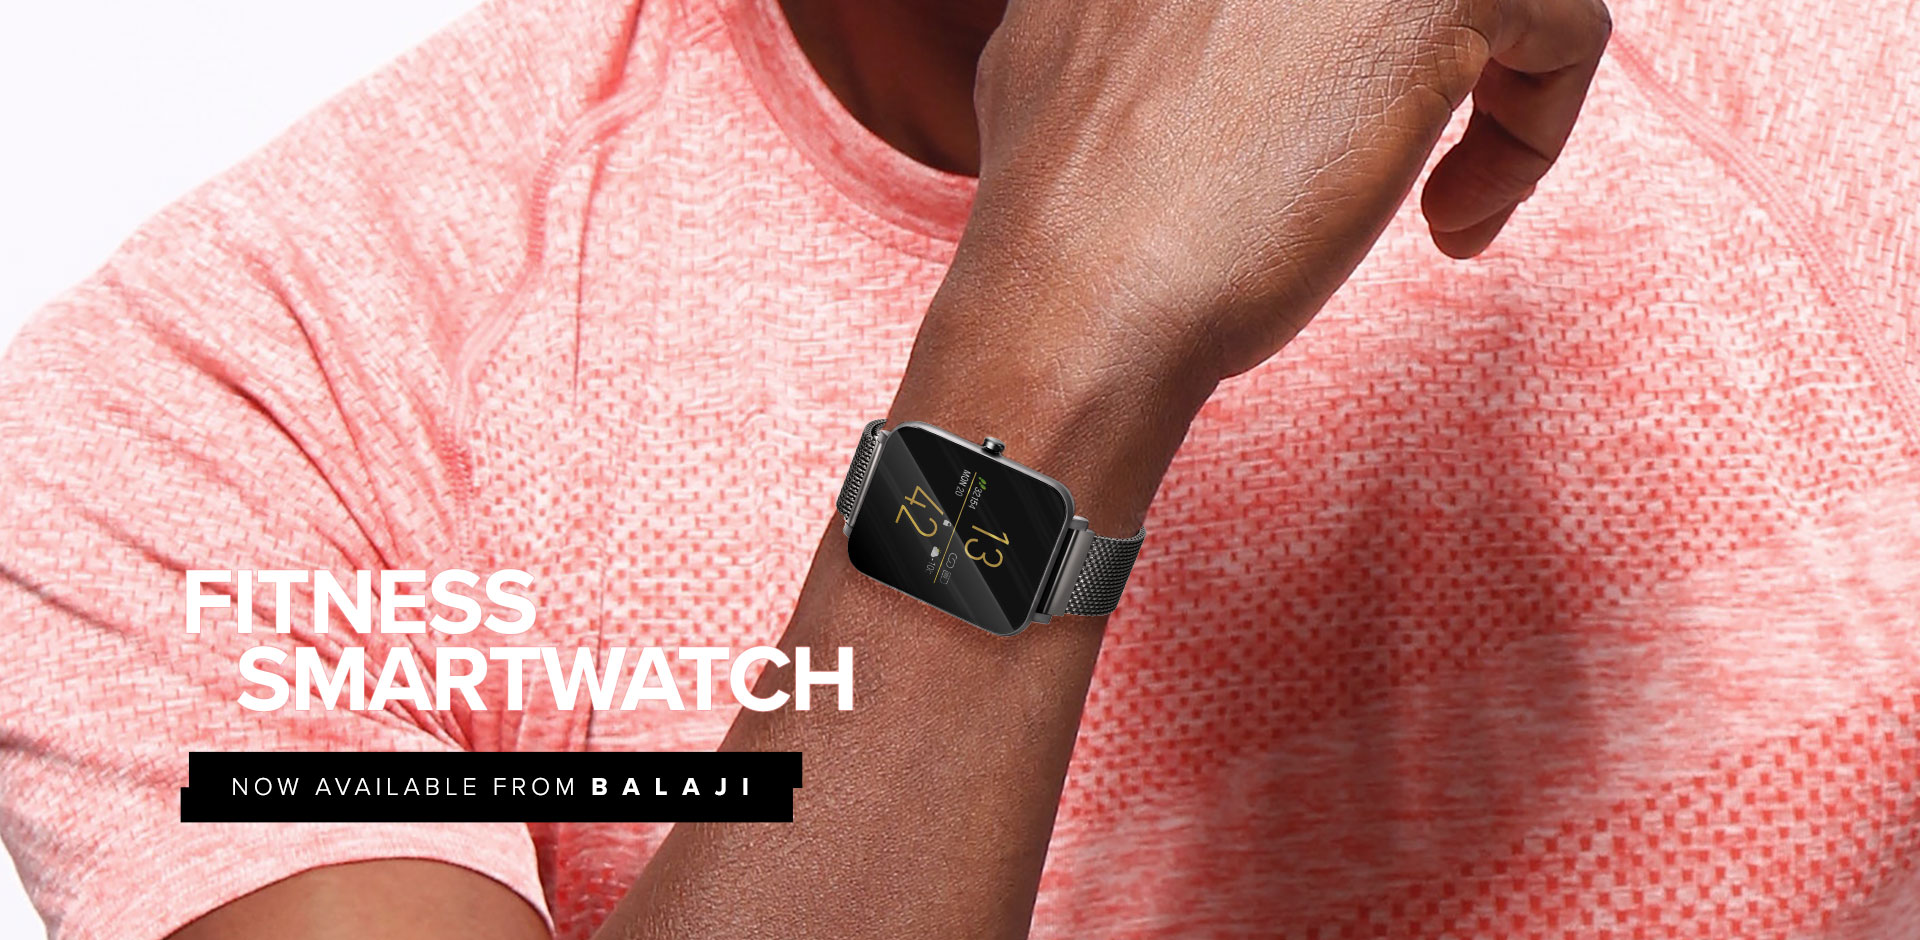 fitness tracker and smartwatch Now Available at BALAJI